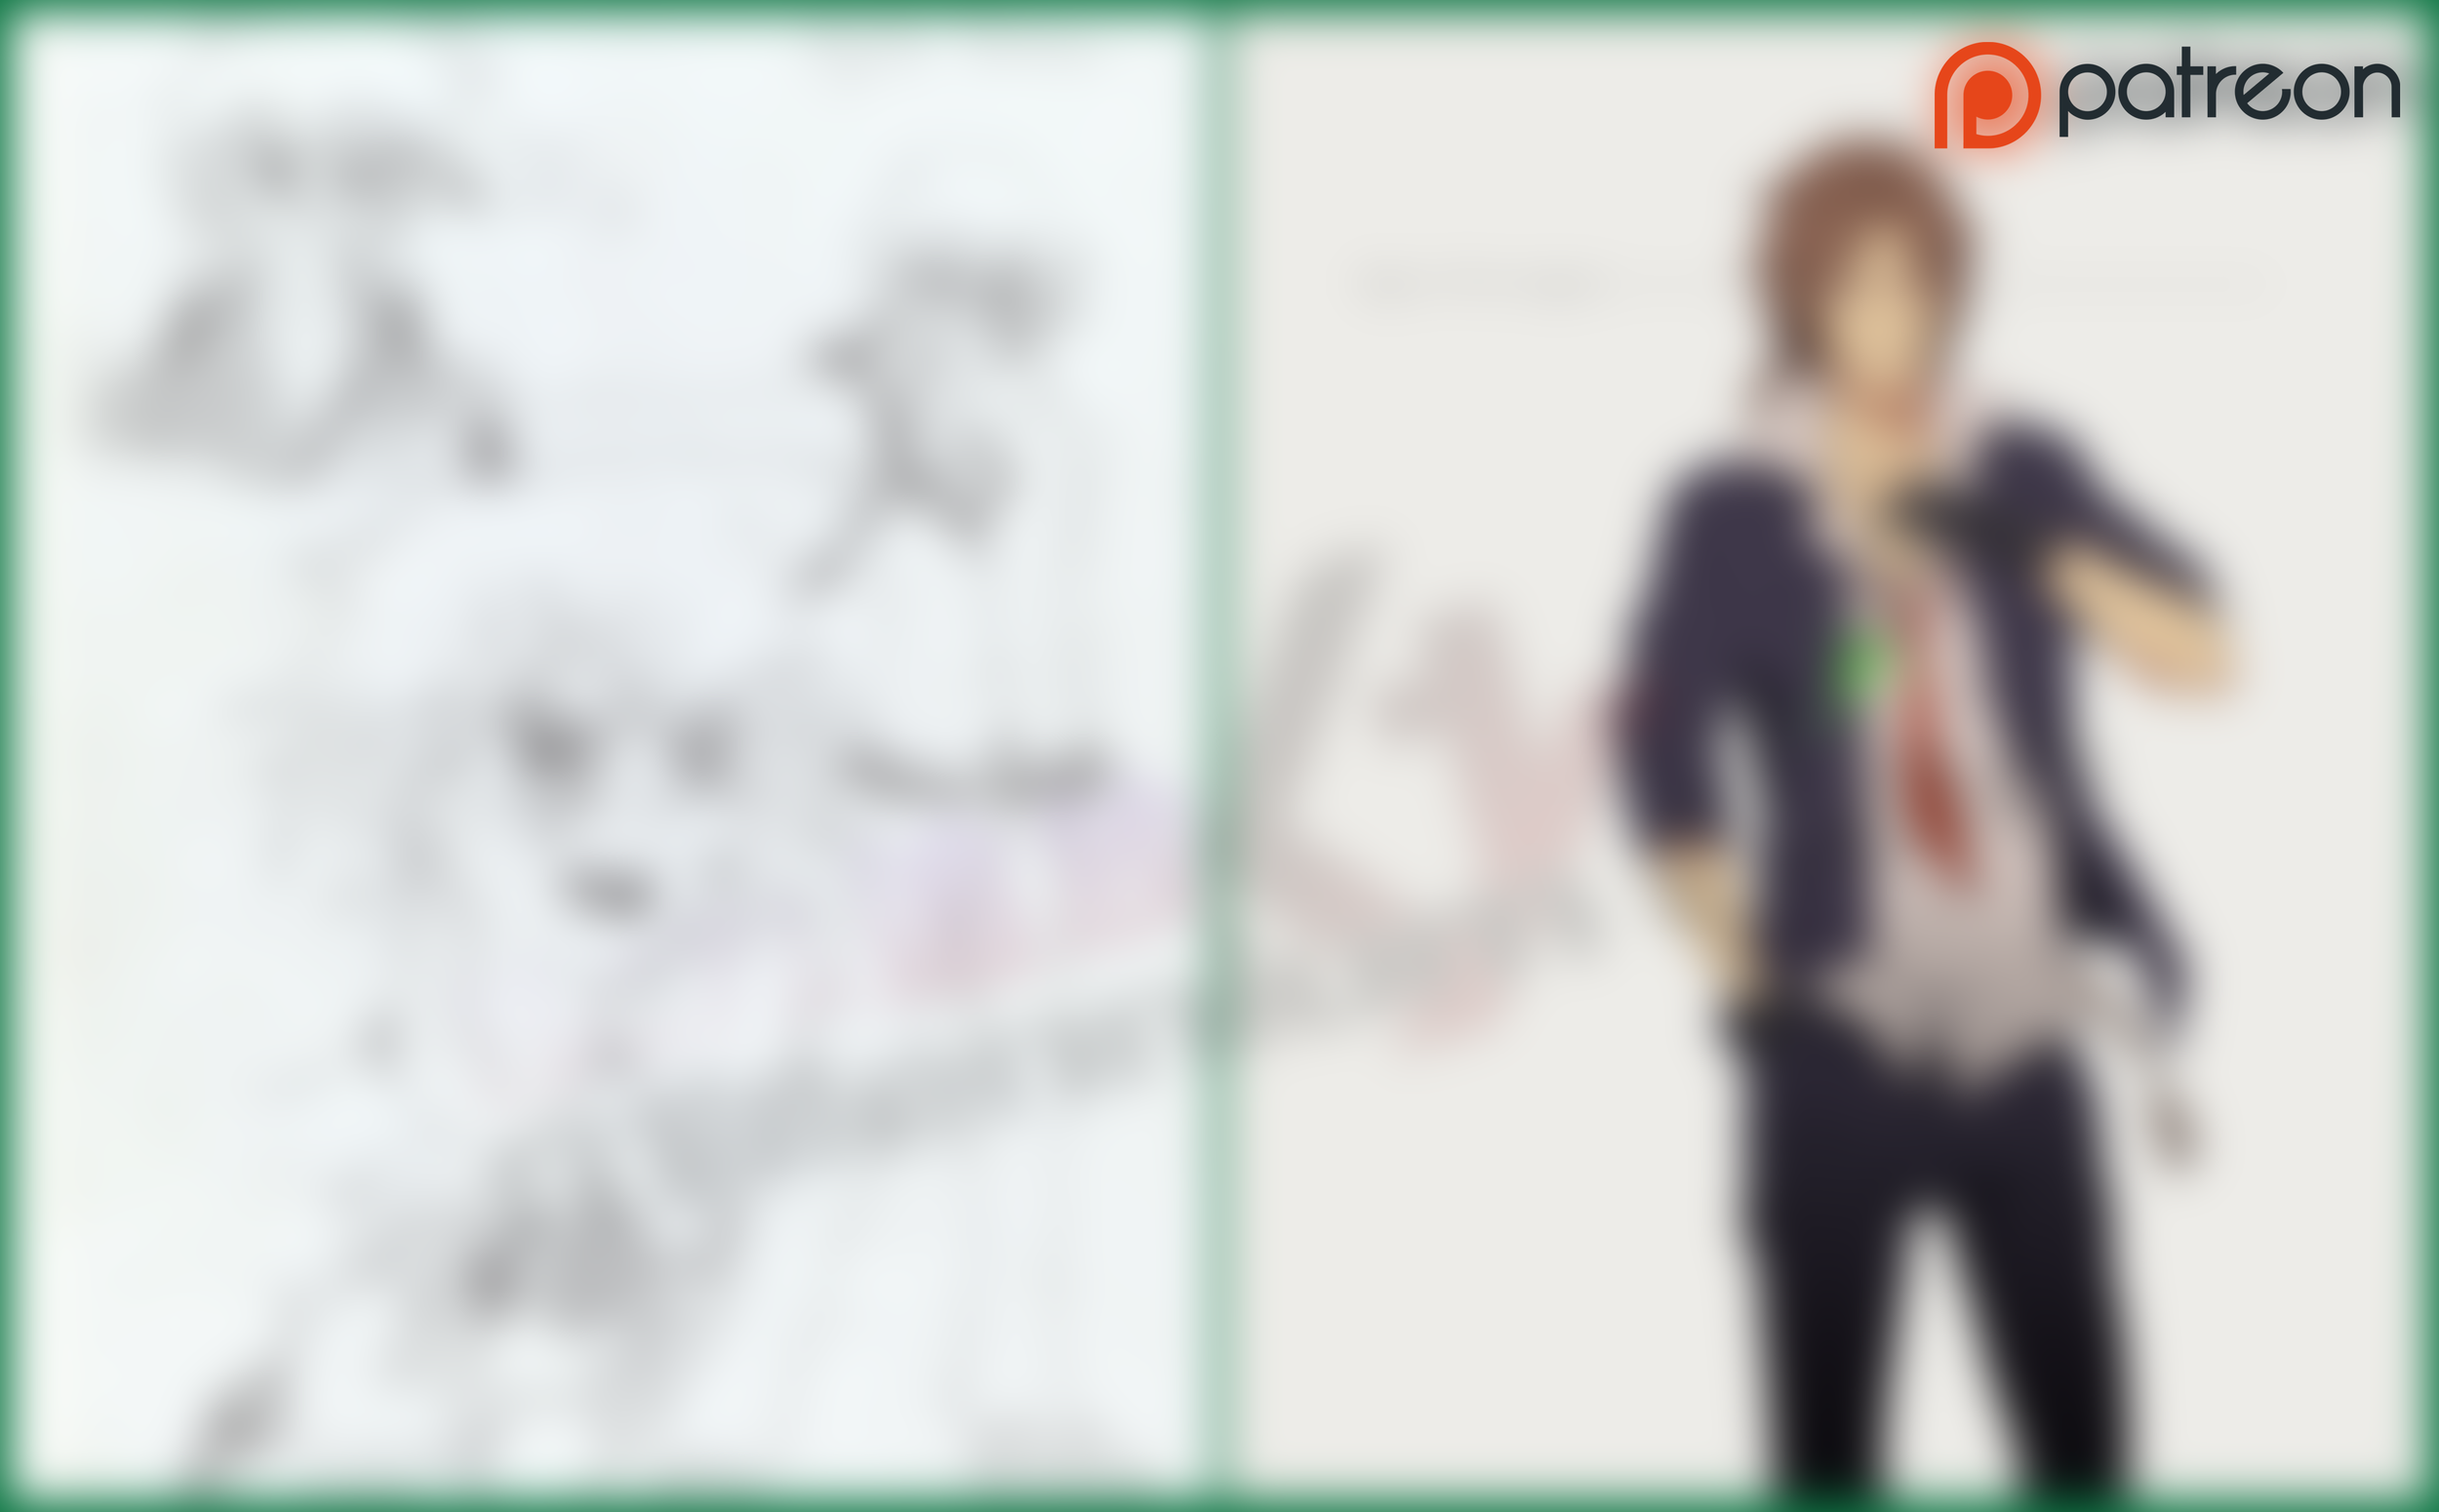 blurred.png